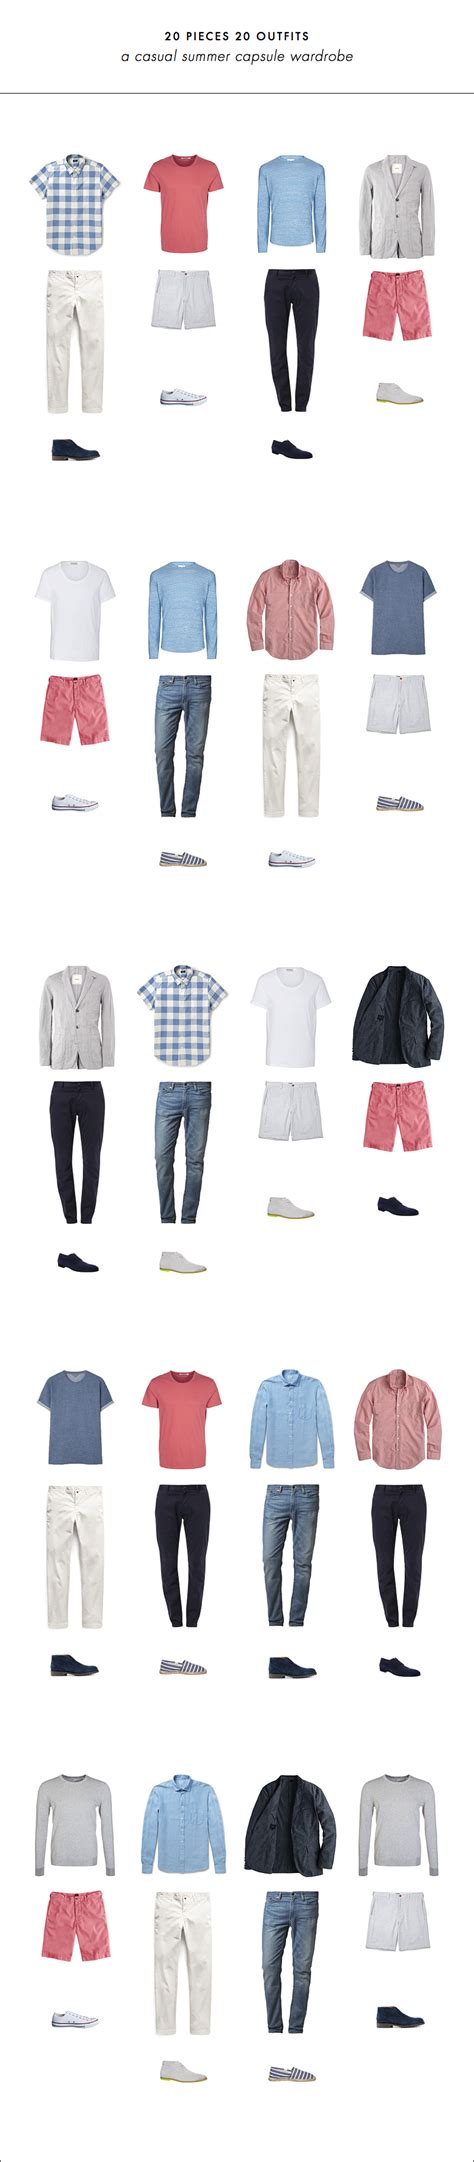 mens minimalist wardrobe 20 pieces 20 outfits an easy summer capsule wardrobe for